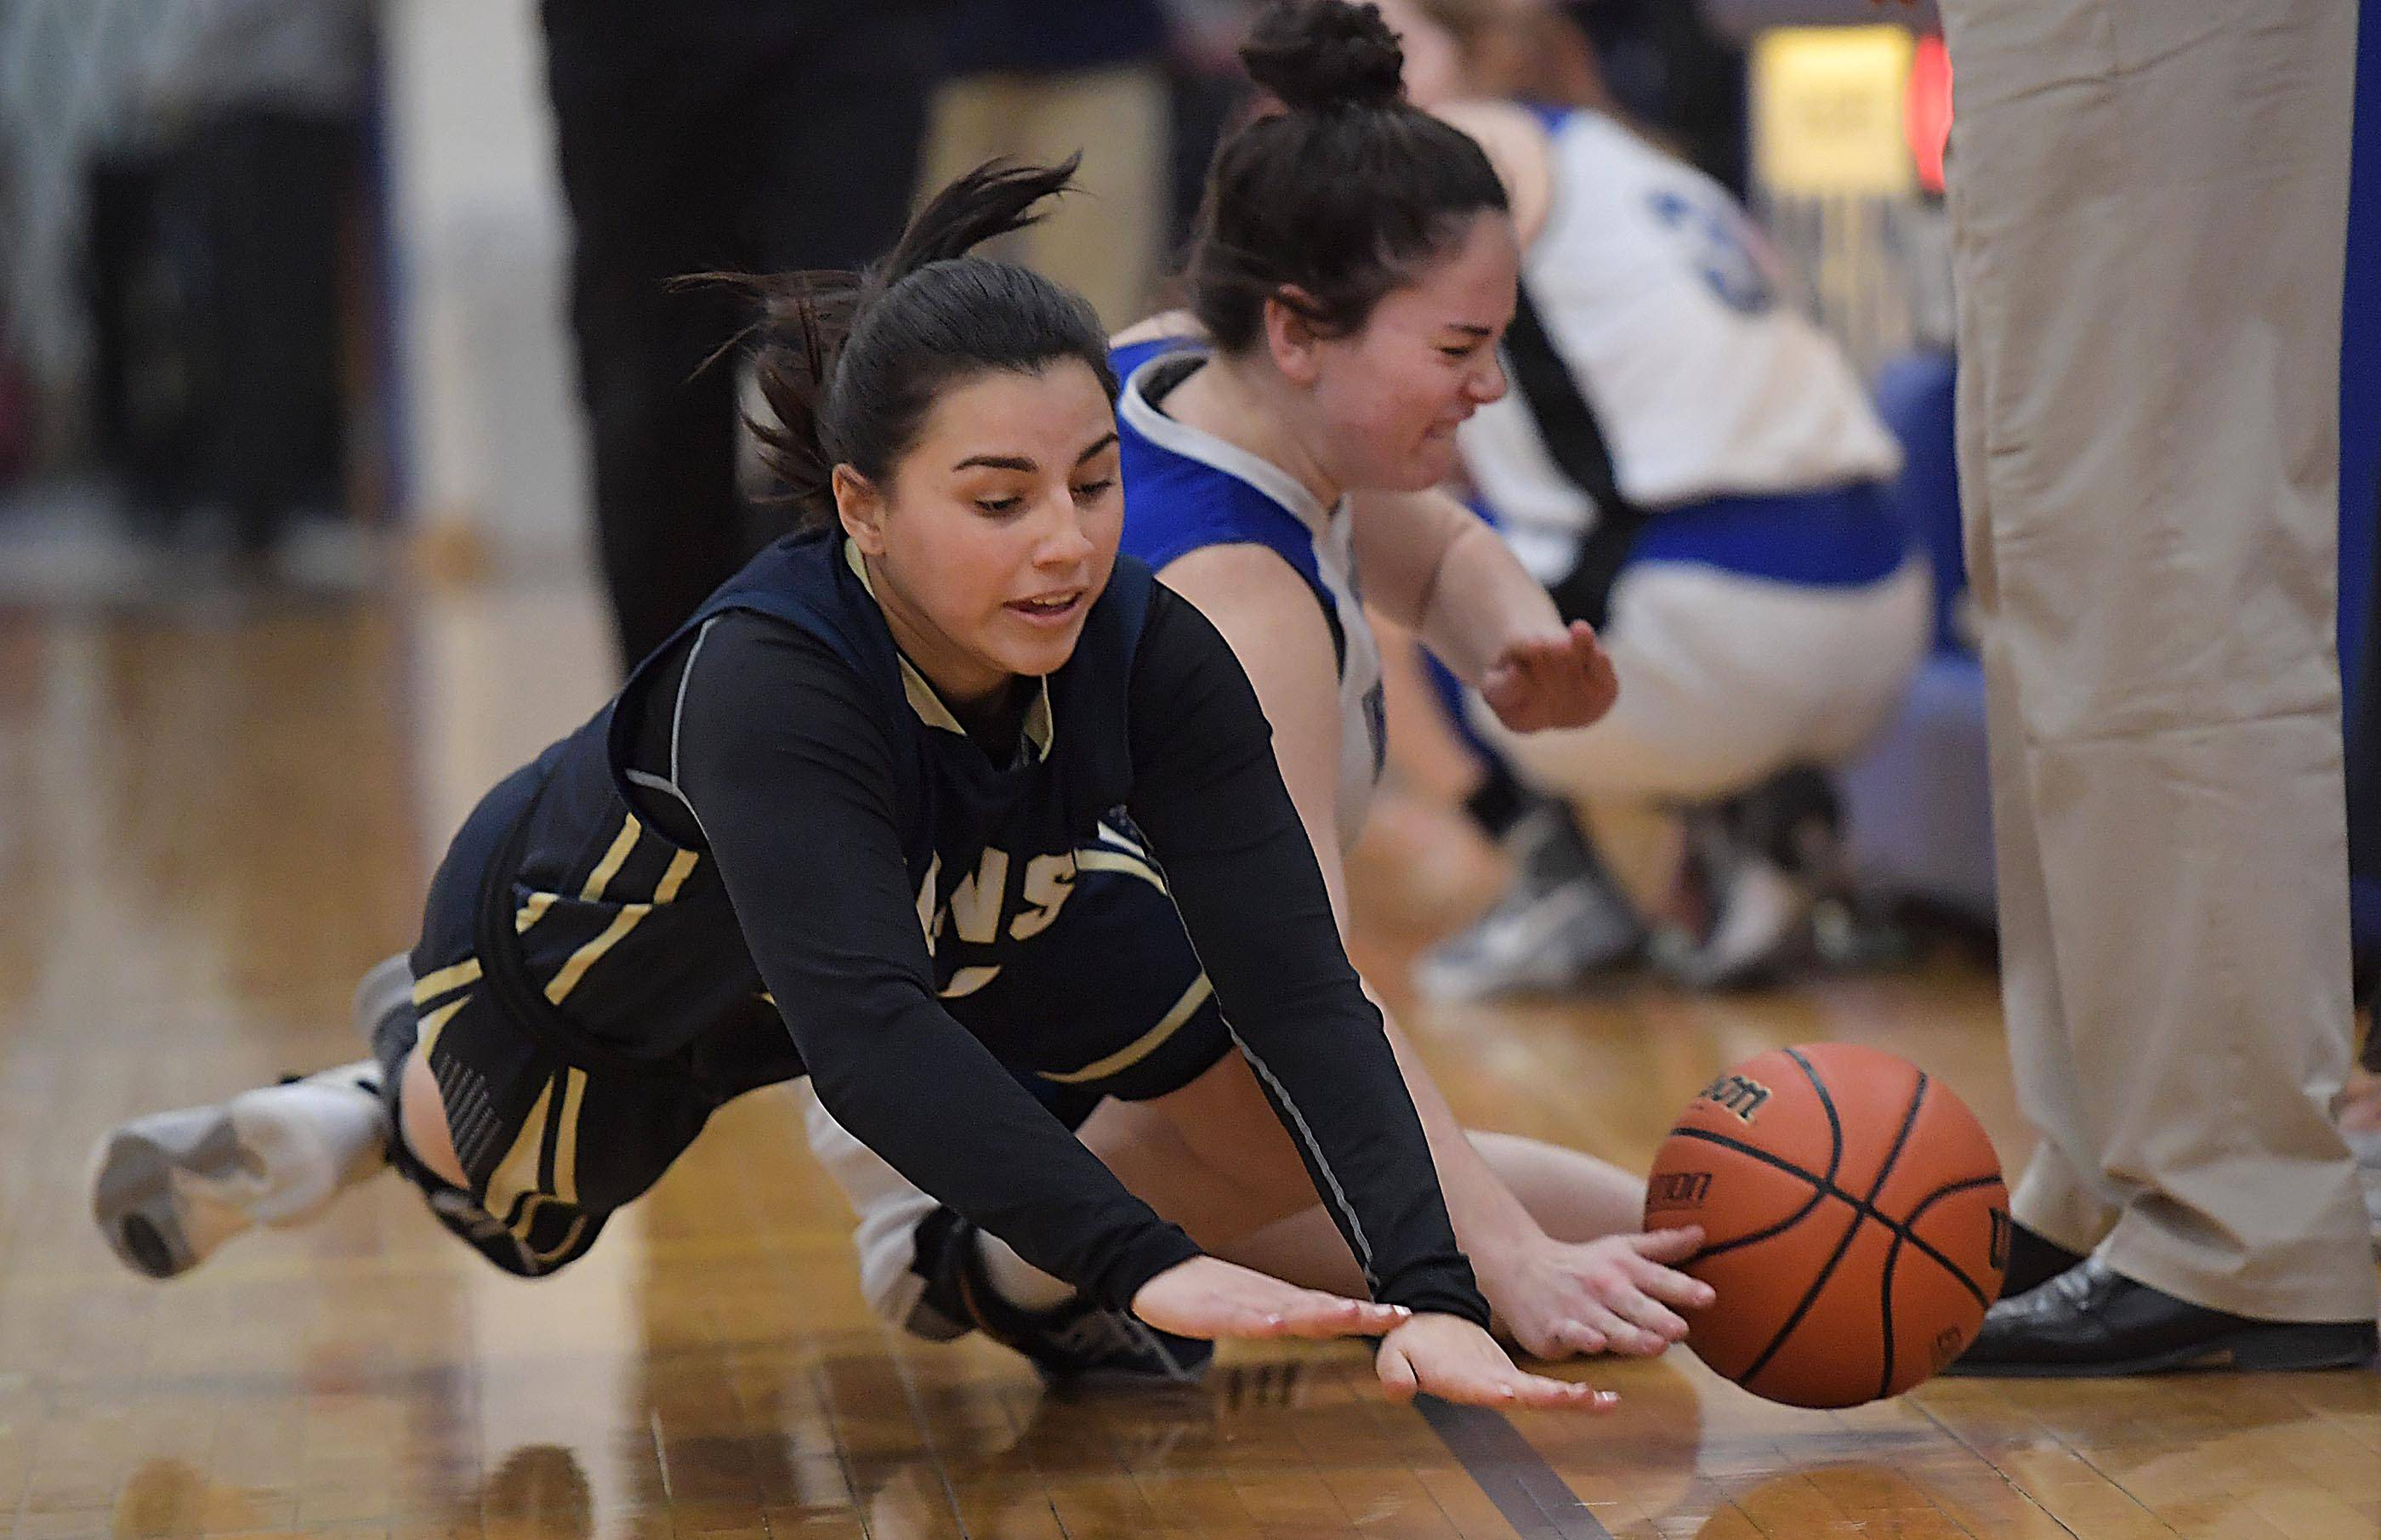 Harvest Christian's Isamar Garcia and Rosary's Maura Vanbogaert tumble out-of-bounds in a girls basketball game in Aurora Tuesday.